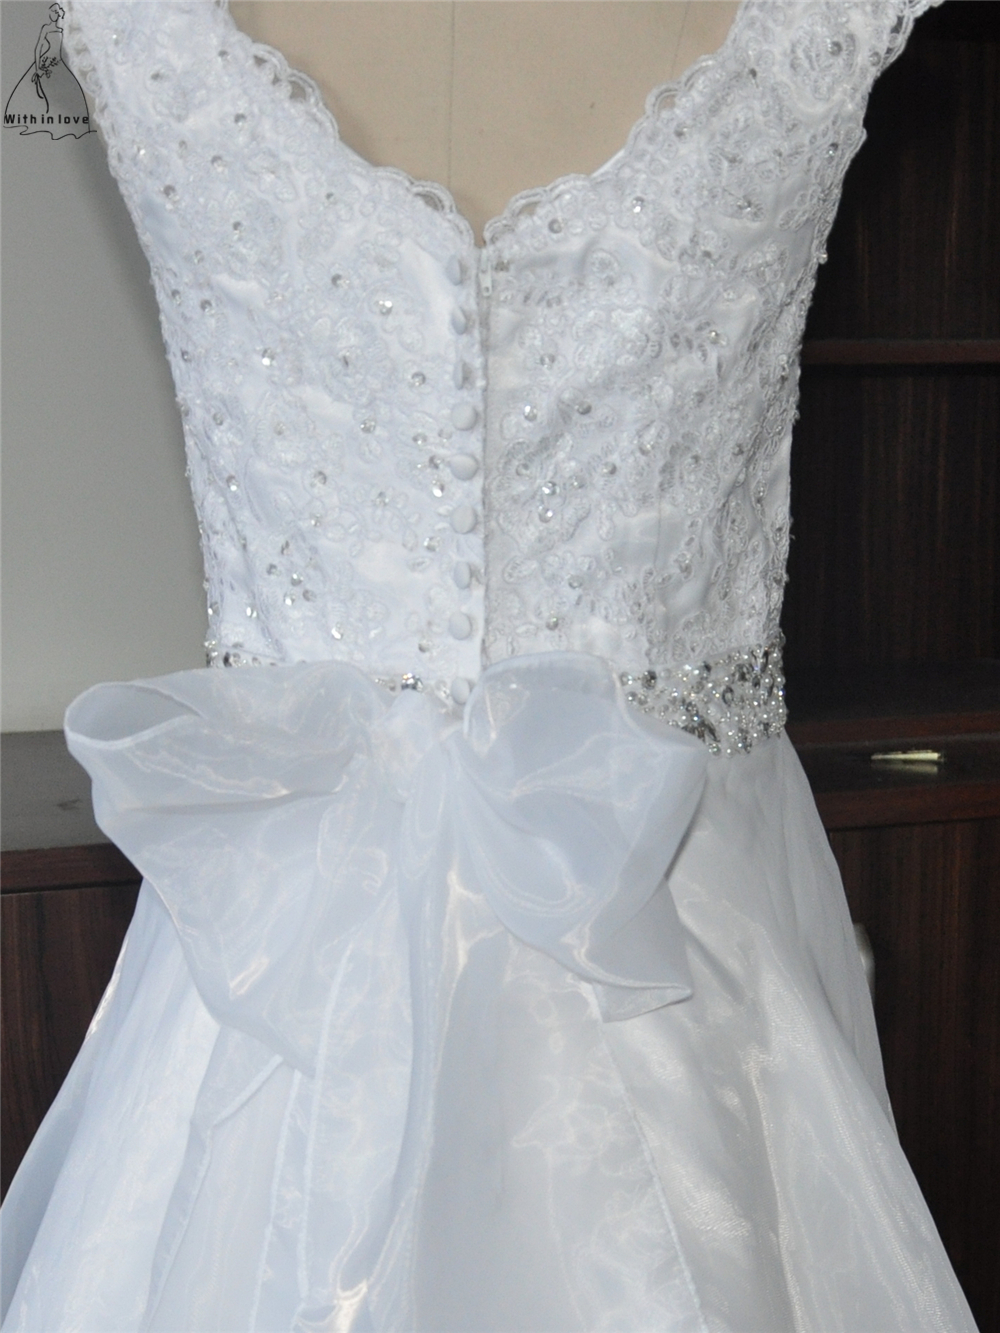 Enchanting Custom Hangers For Wedding Dress Model - All Wedding ...